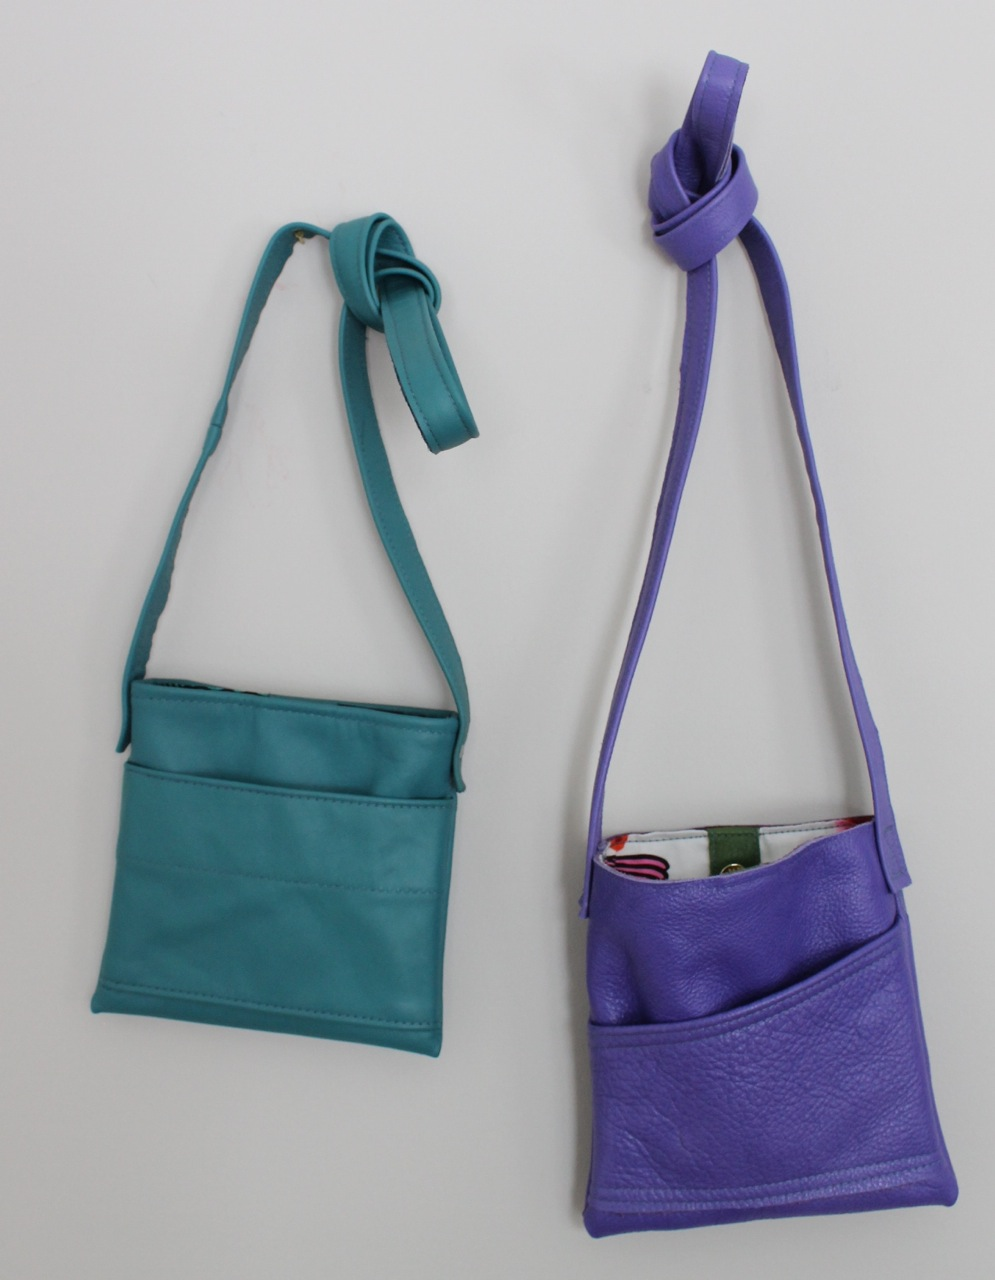 Jan in turquoise and purple